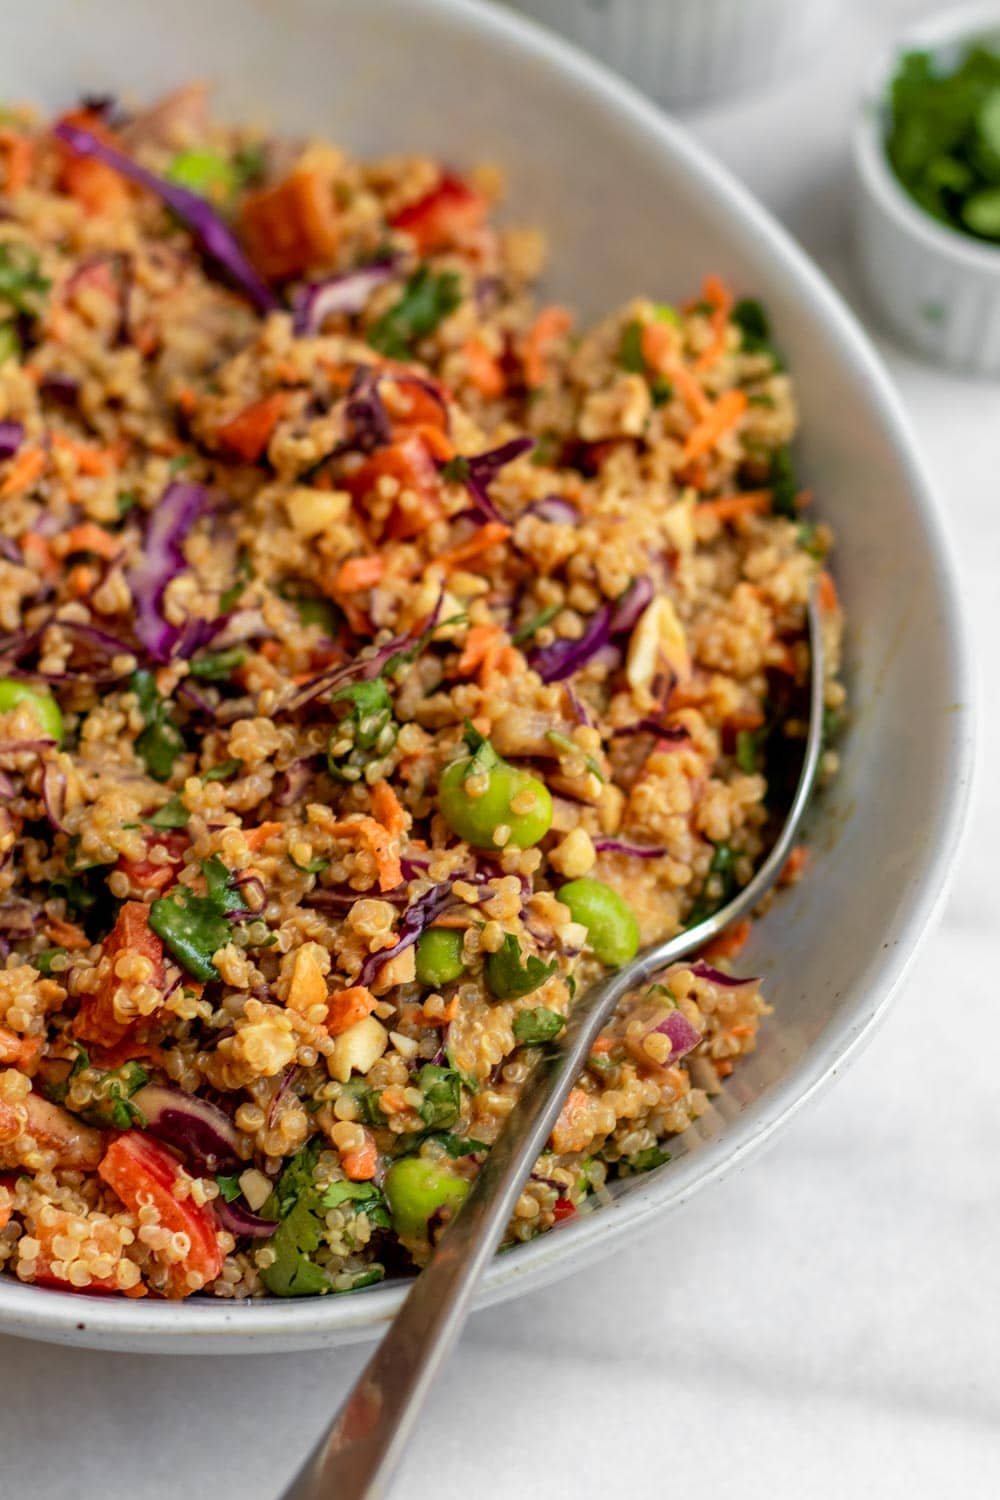 Up close of quinoa salad with veggies and thai peanut sauce.